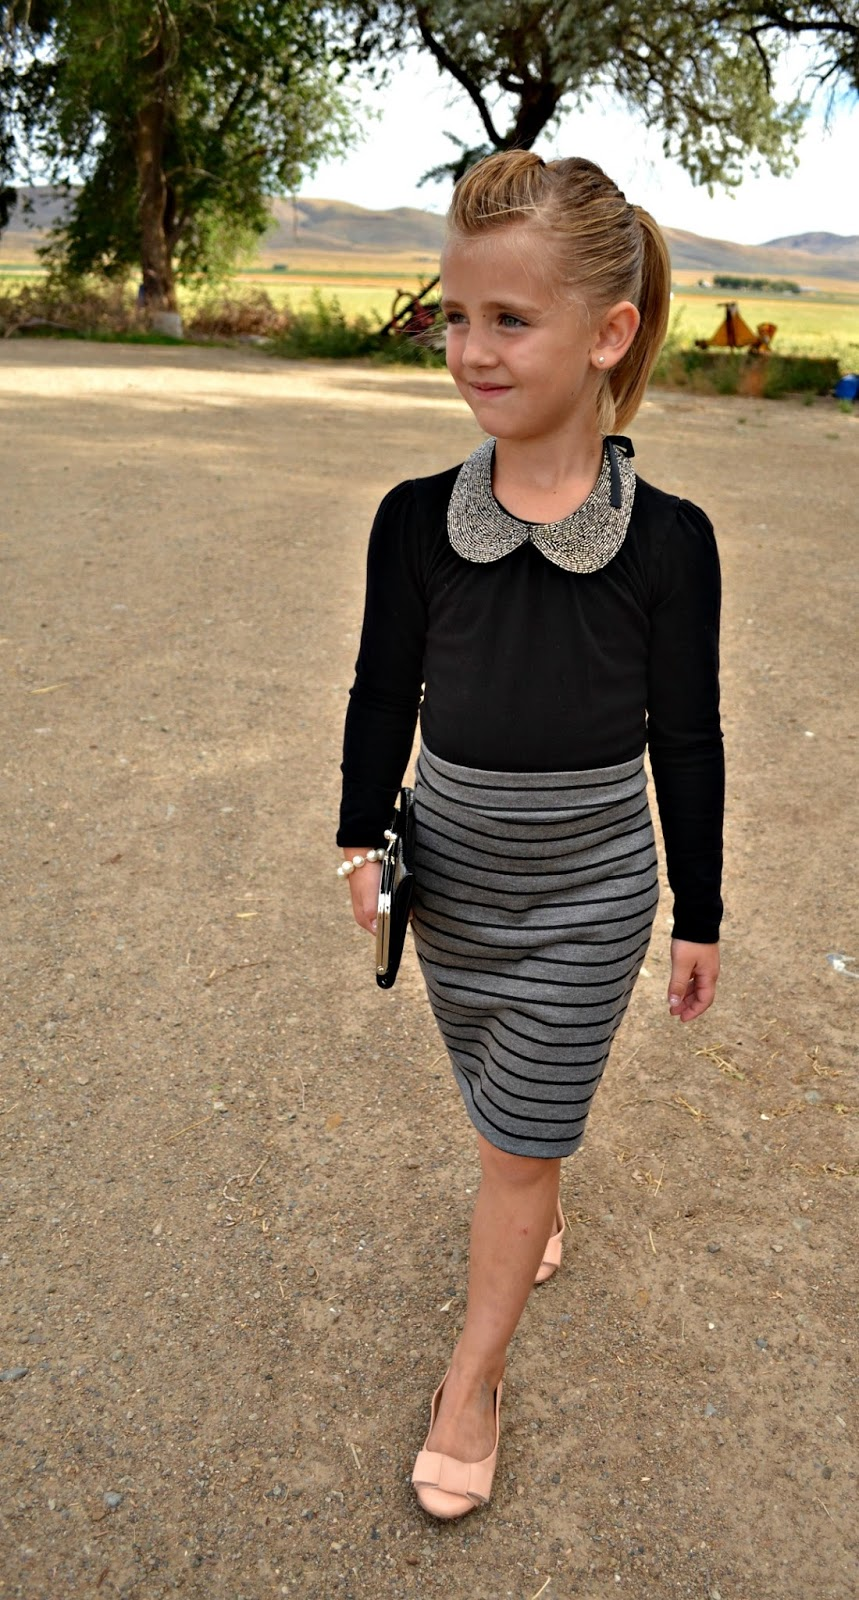 stella crew pencil skirts and simple accessories